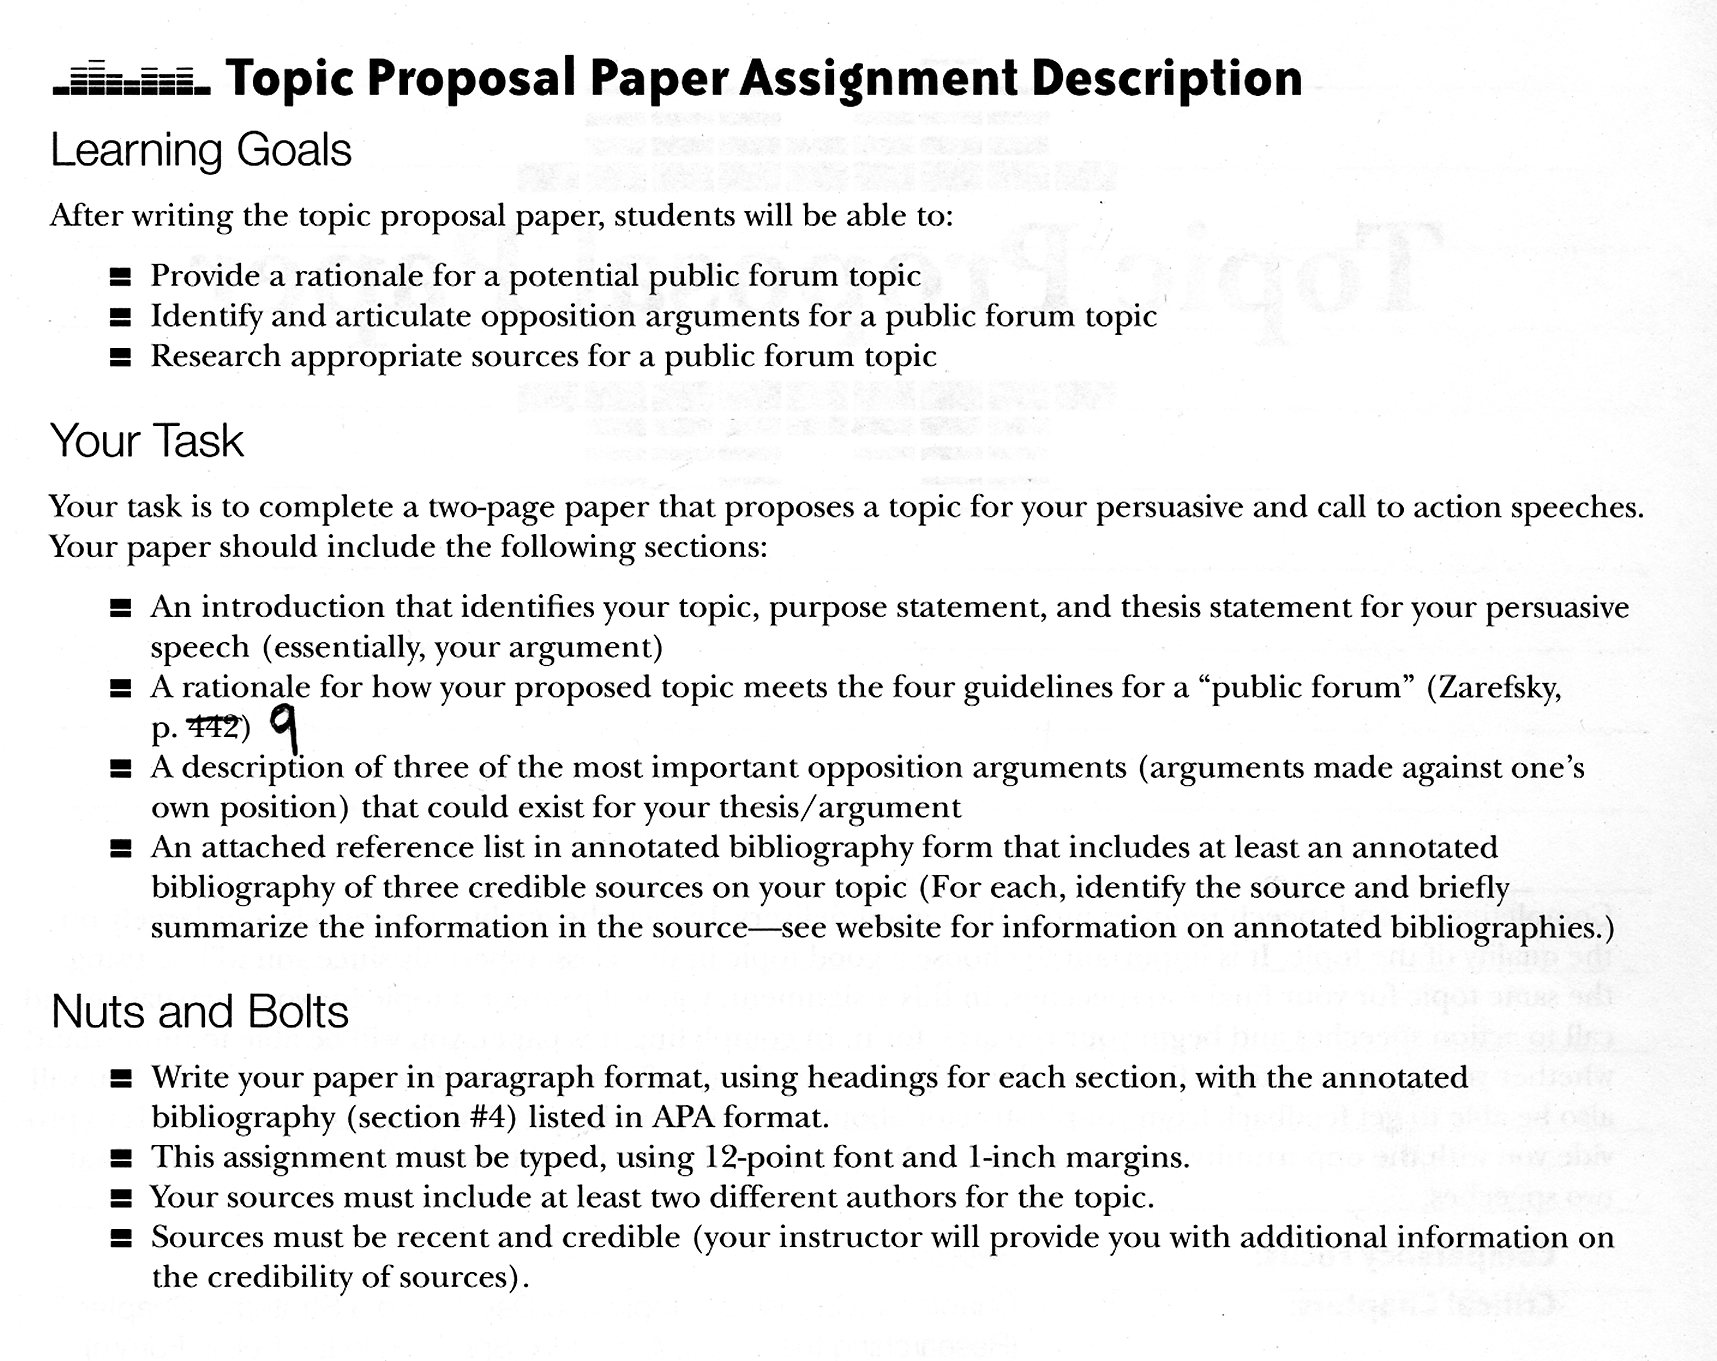 essay writing forum creative writing scholarships weird  sample essay proposal sample proposal essay examples gazelleapp project rubric for high school project proposal outline